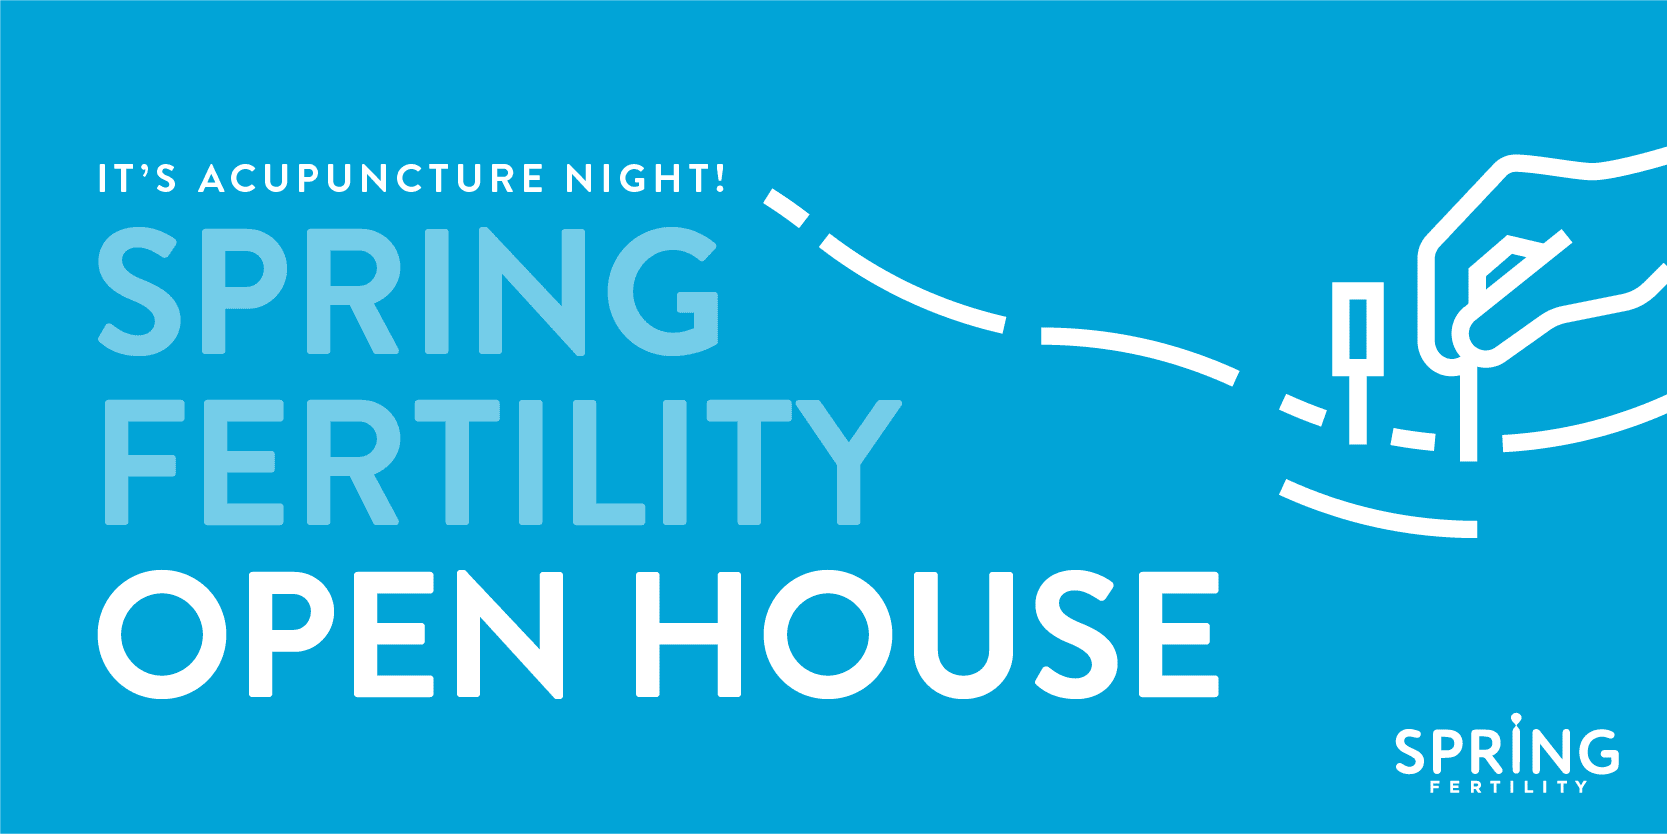 Spring Fertility (San Francisco) Acupuncture Open House